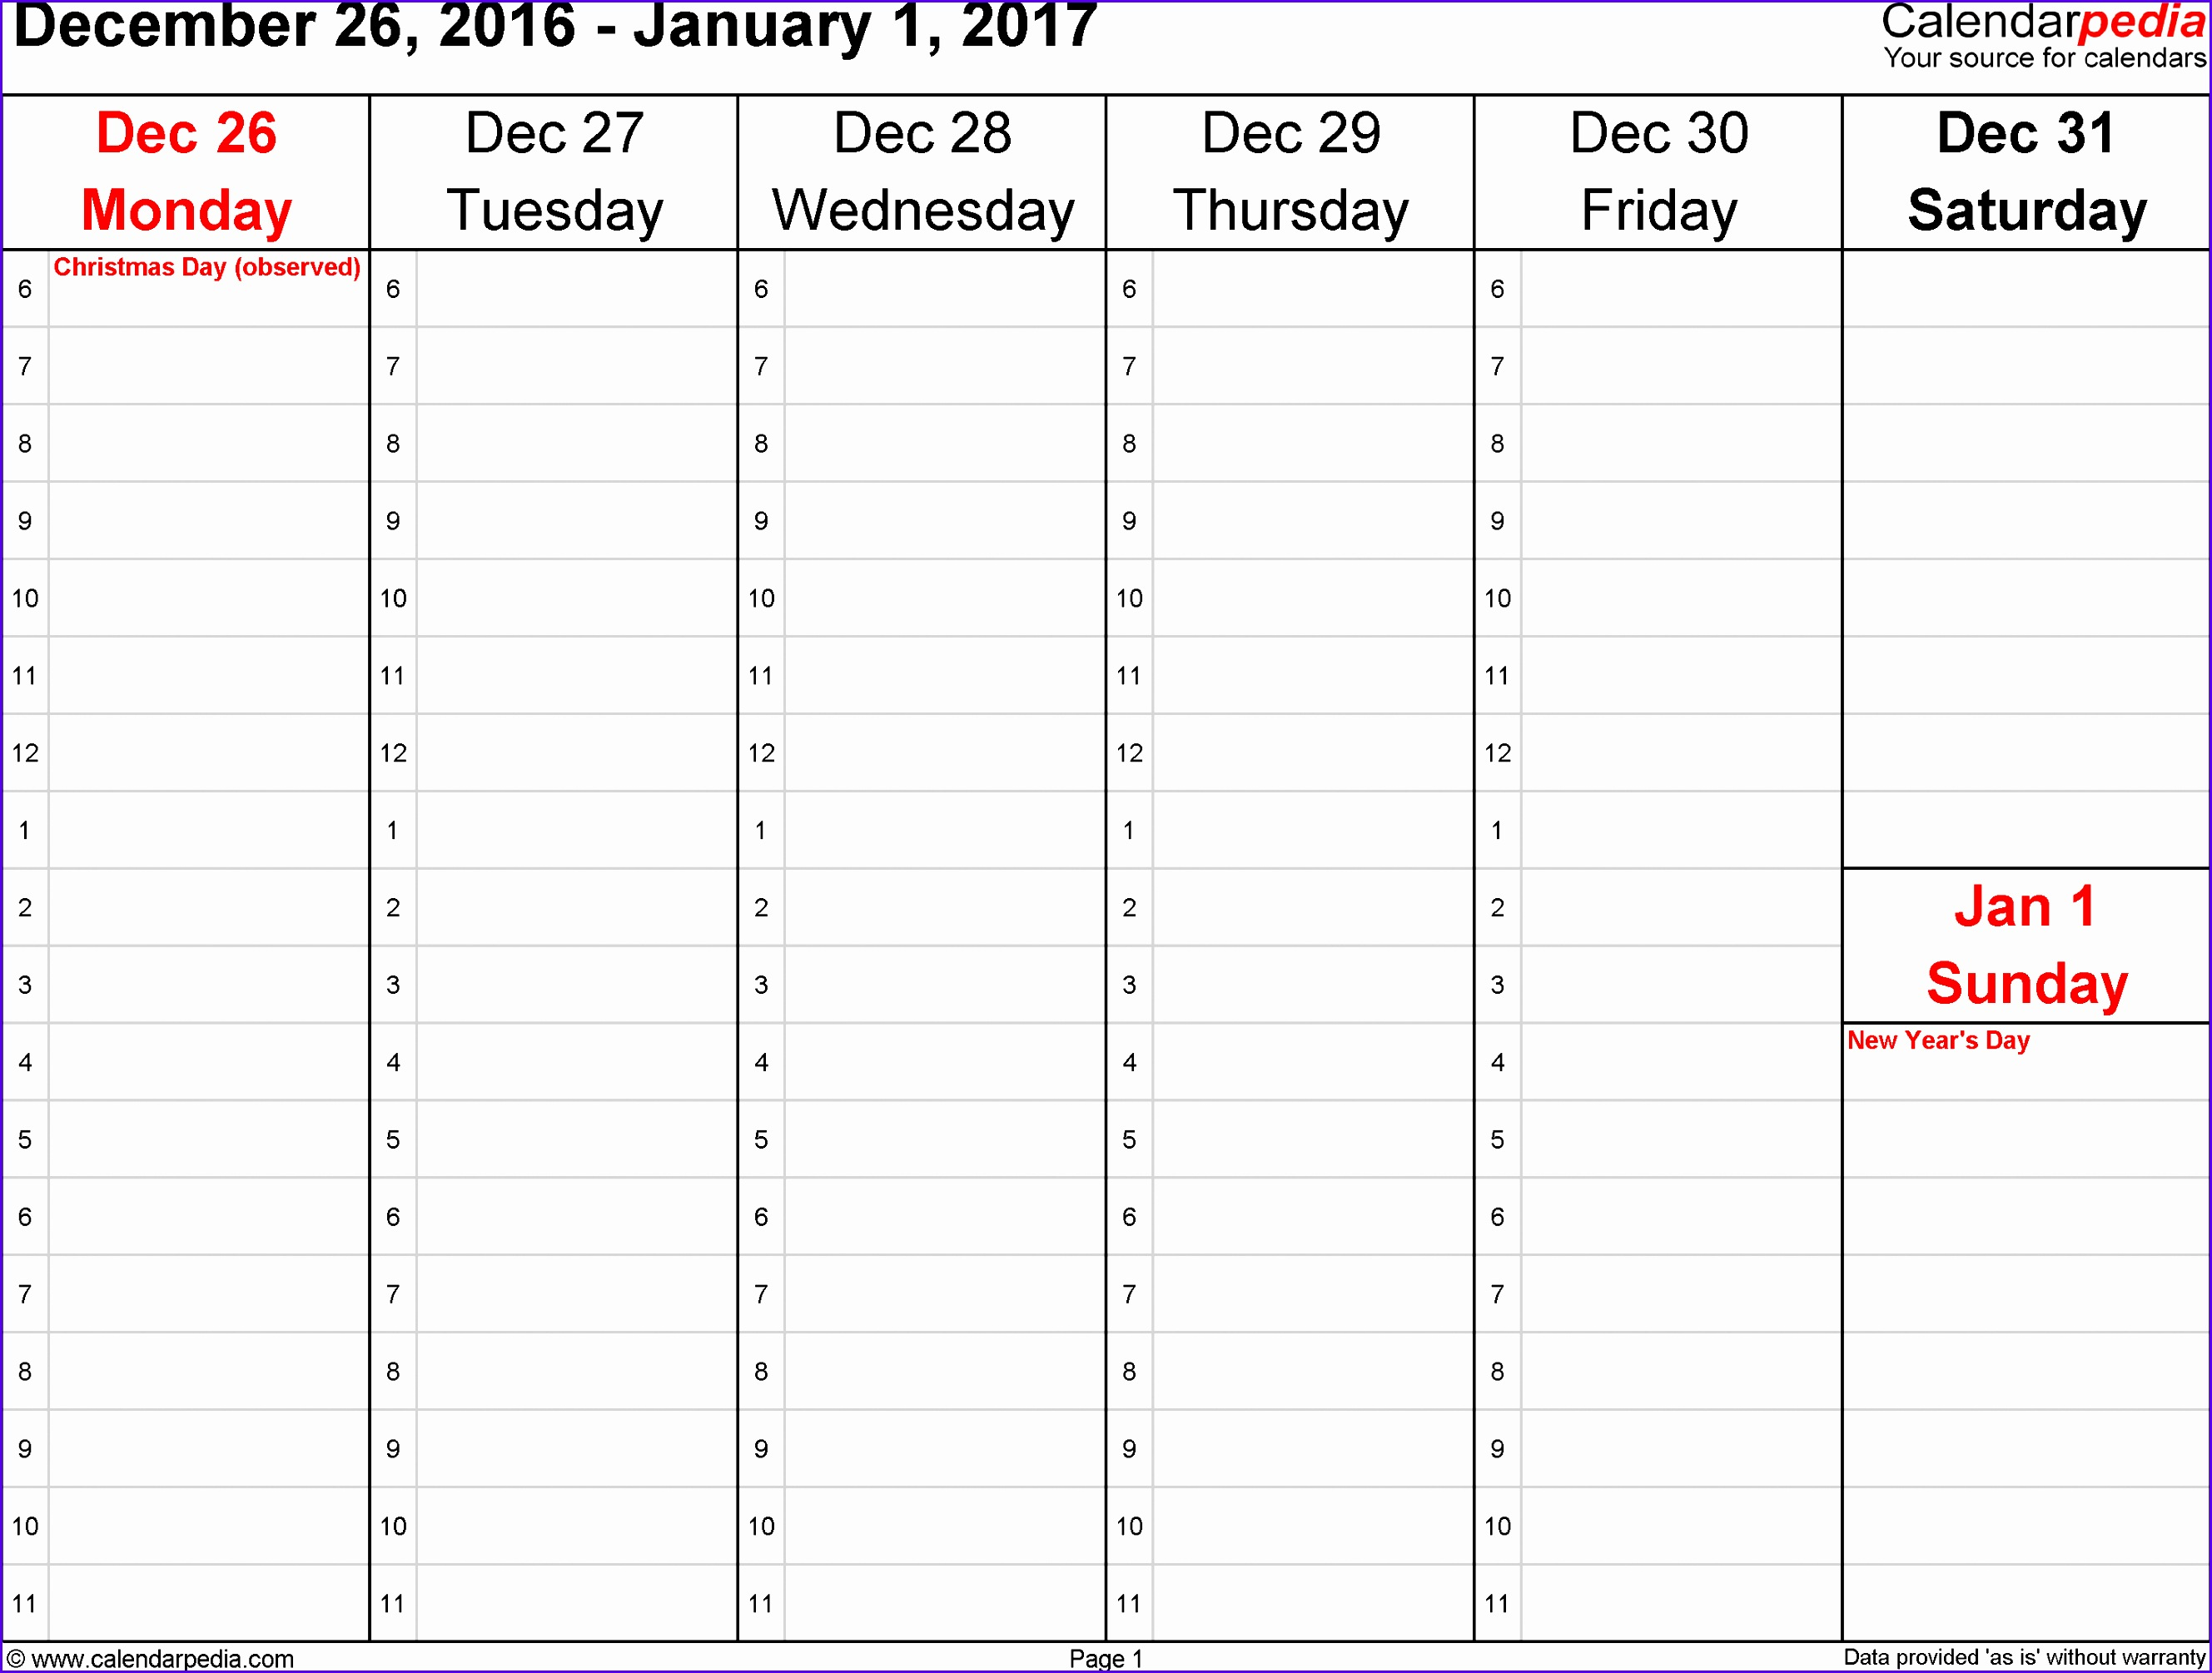 Weekly calendar 2017 template for Excel version 4 landscape 53 pages Saturday 26572010